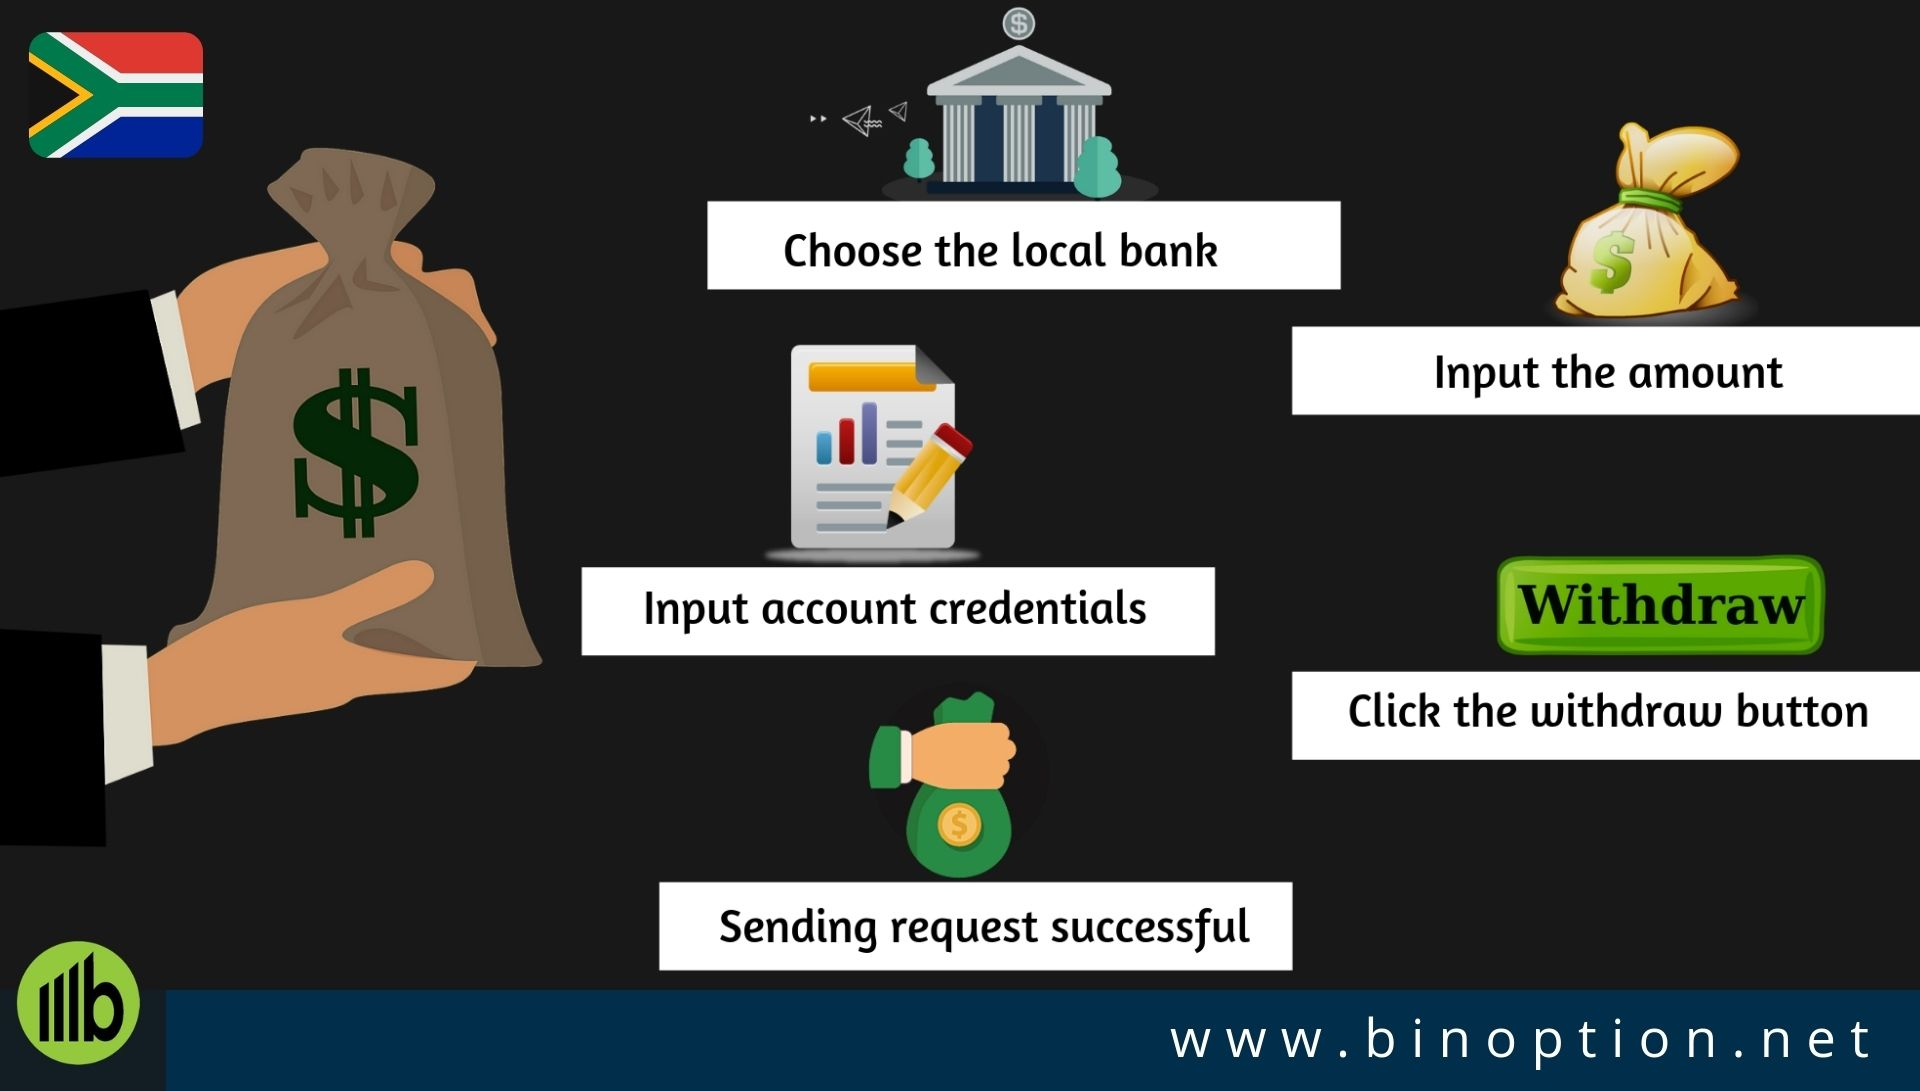 How to withdrawal with a local bank south african